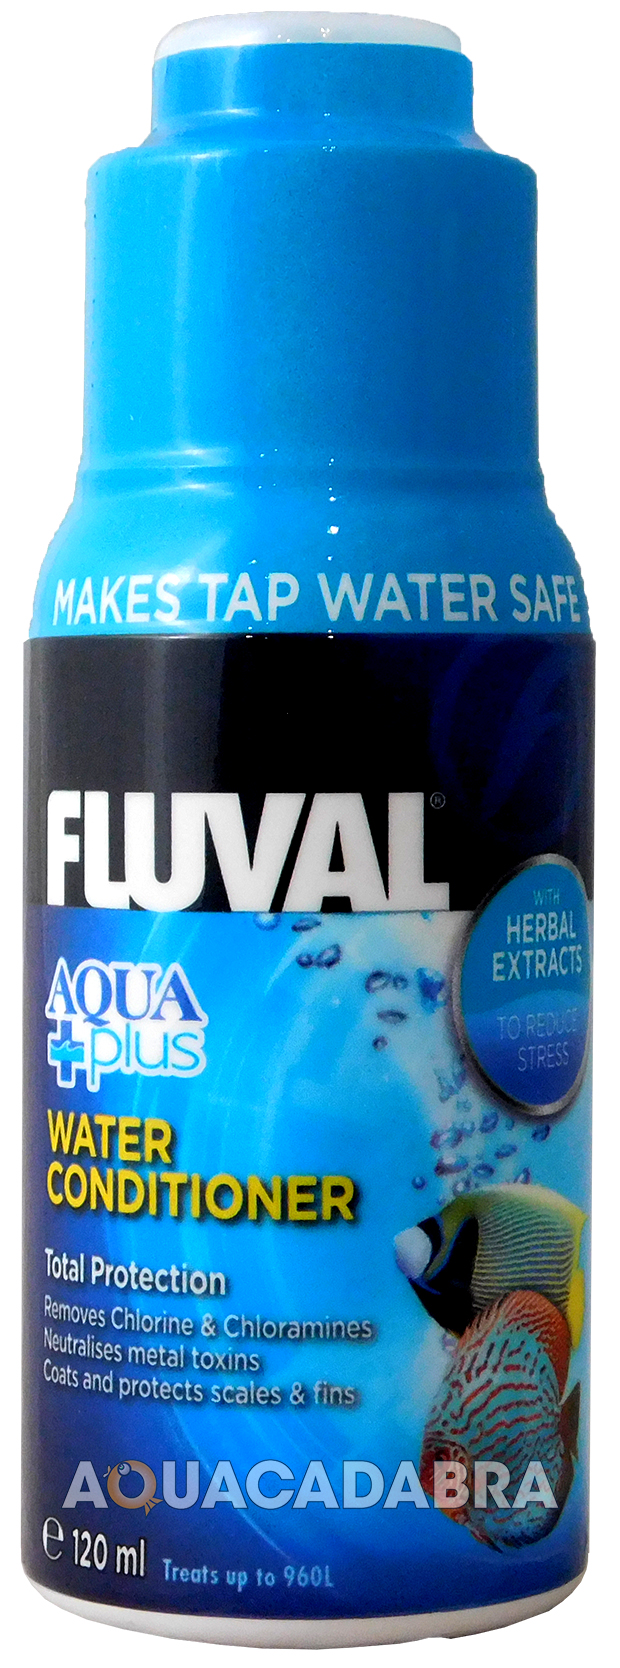 Fluval aqua plus water conditioner new fish tank tap safe for How to make tap water safe for fish